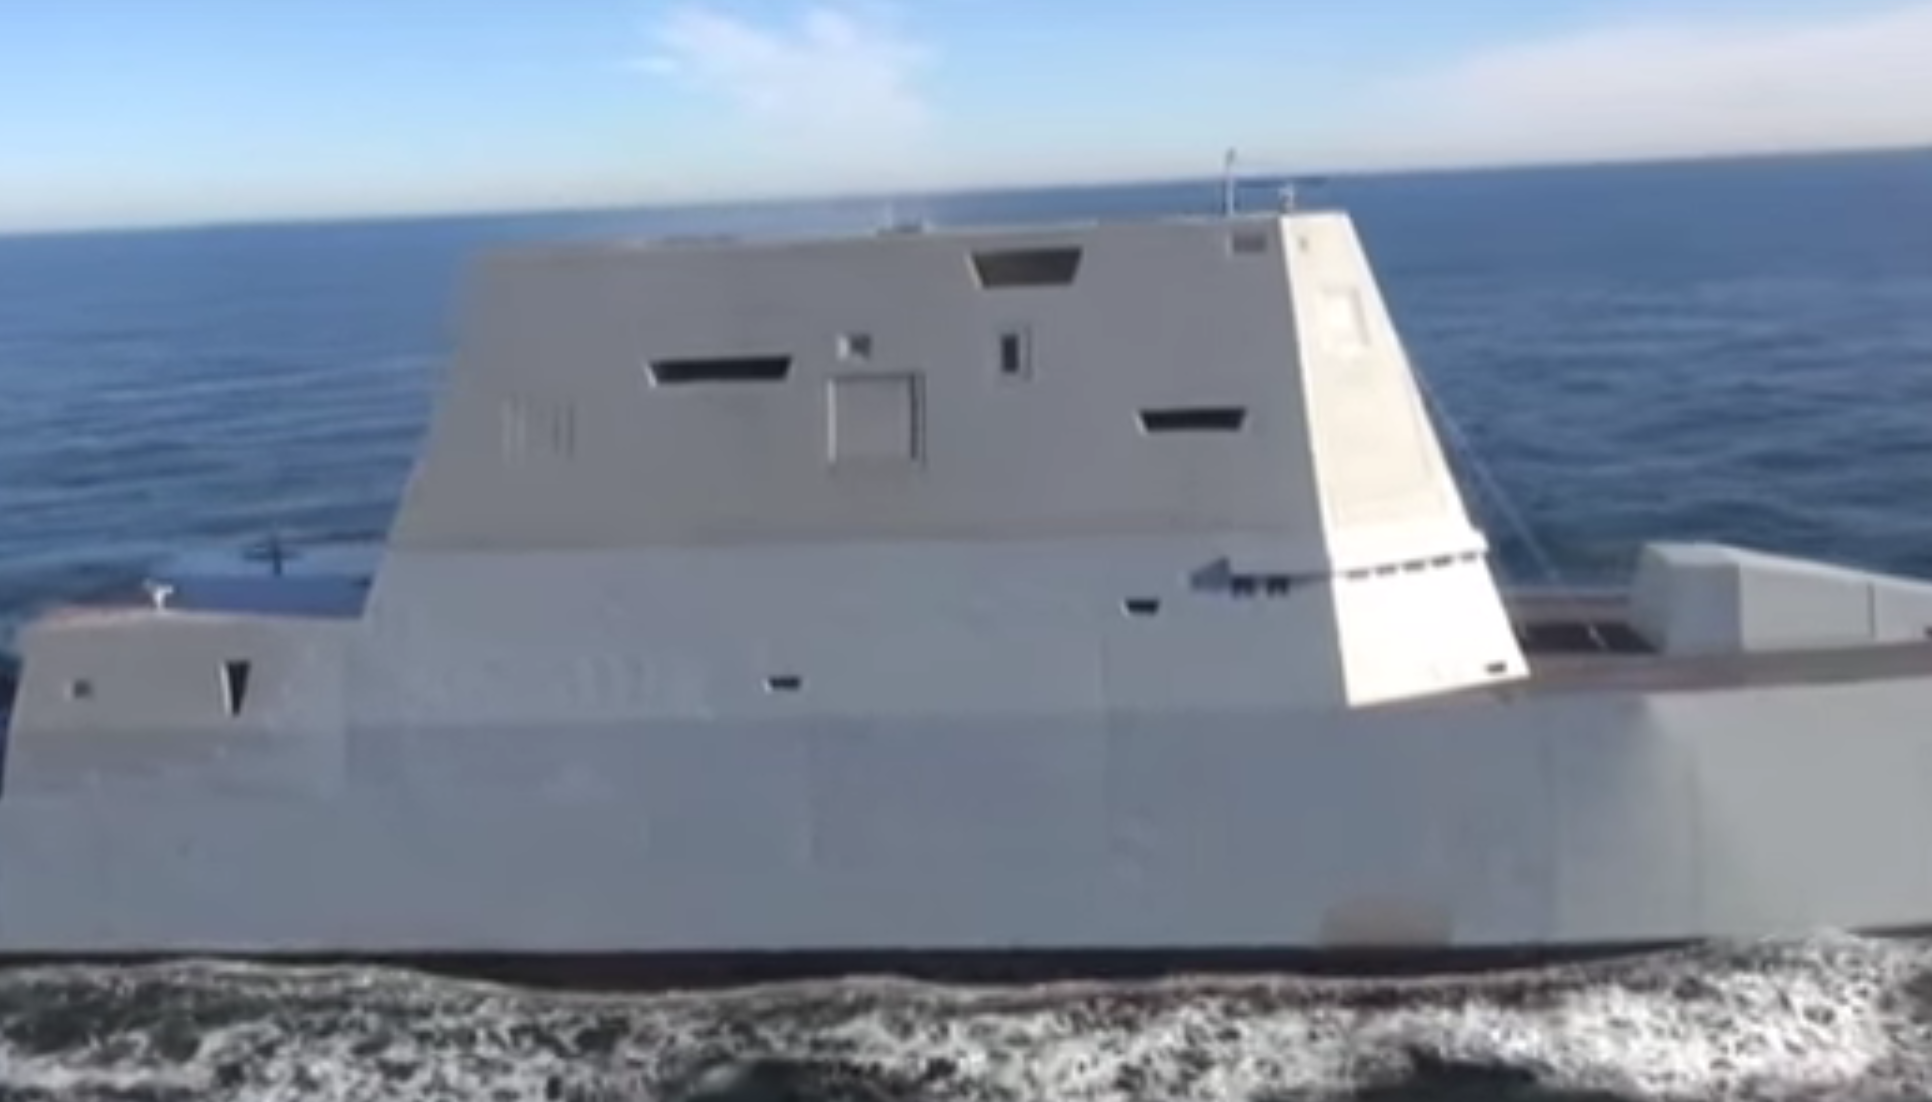 The starboard view Zumwalt DDG-1000 from a Dec. 7, 2016 underway. US Navy Image